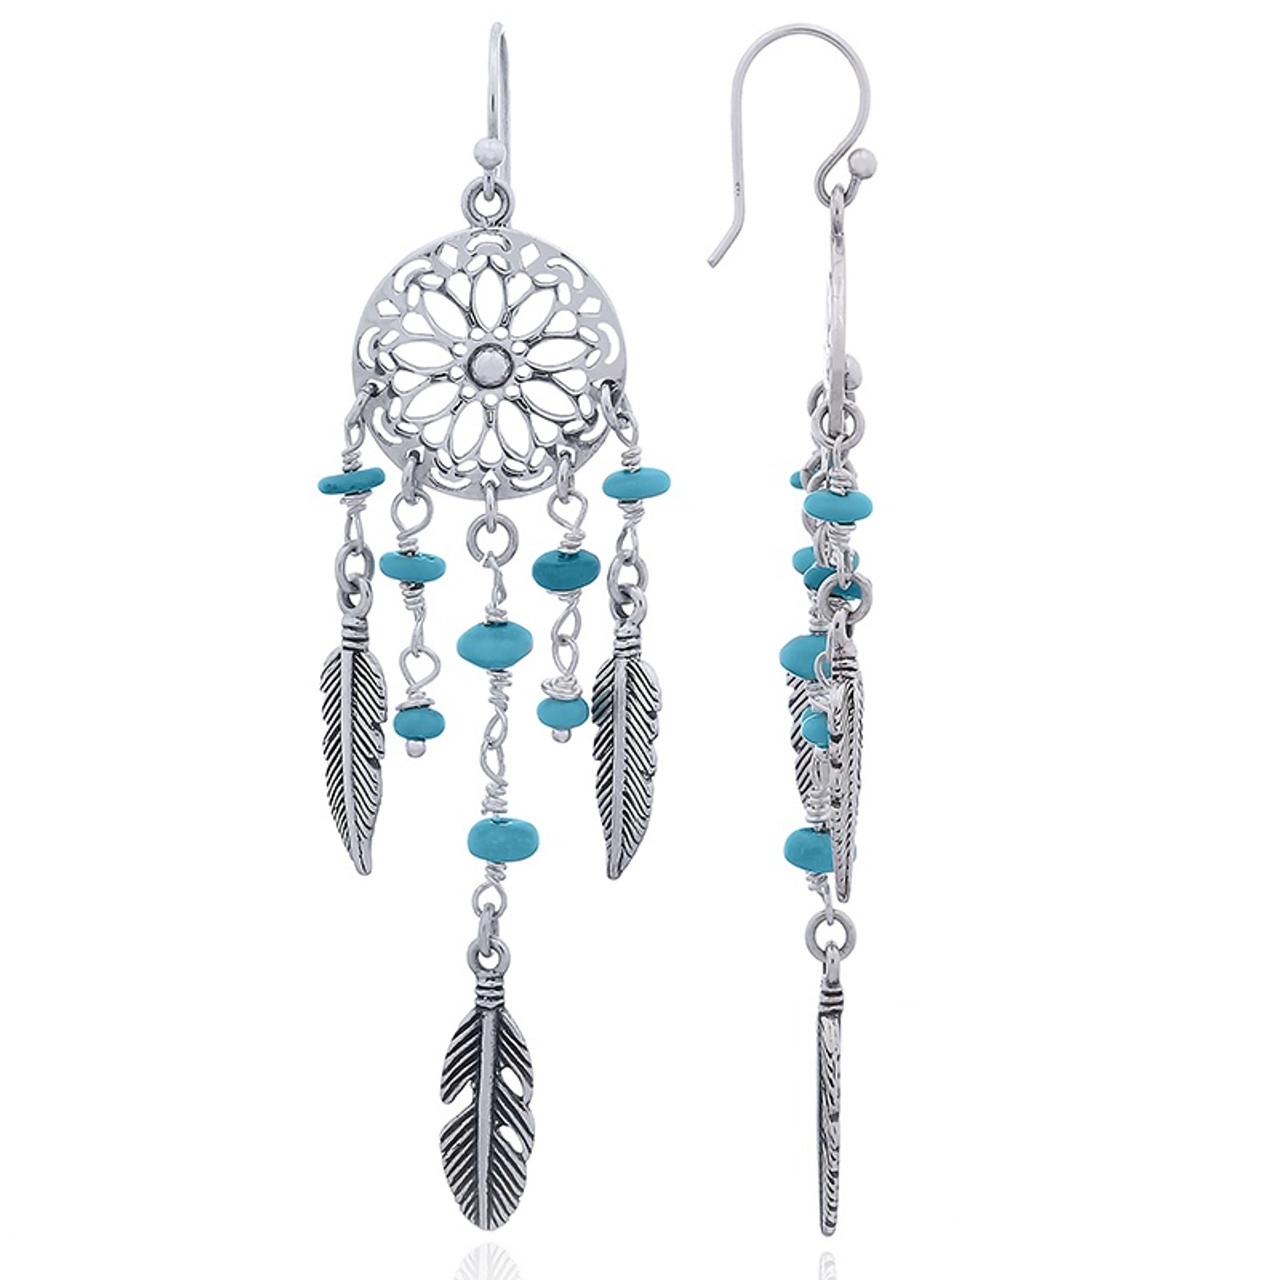 Antique Silver Dream Catcher Dangle Drop Turquoise Bead Earrings Jewelry Gift